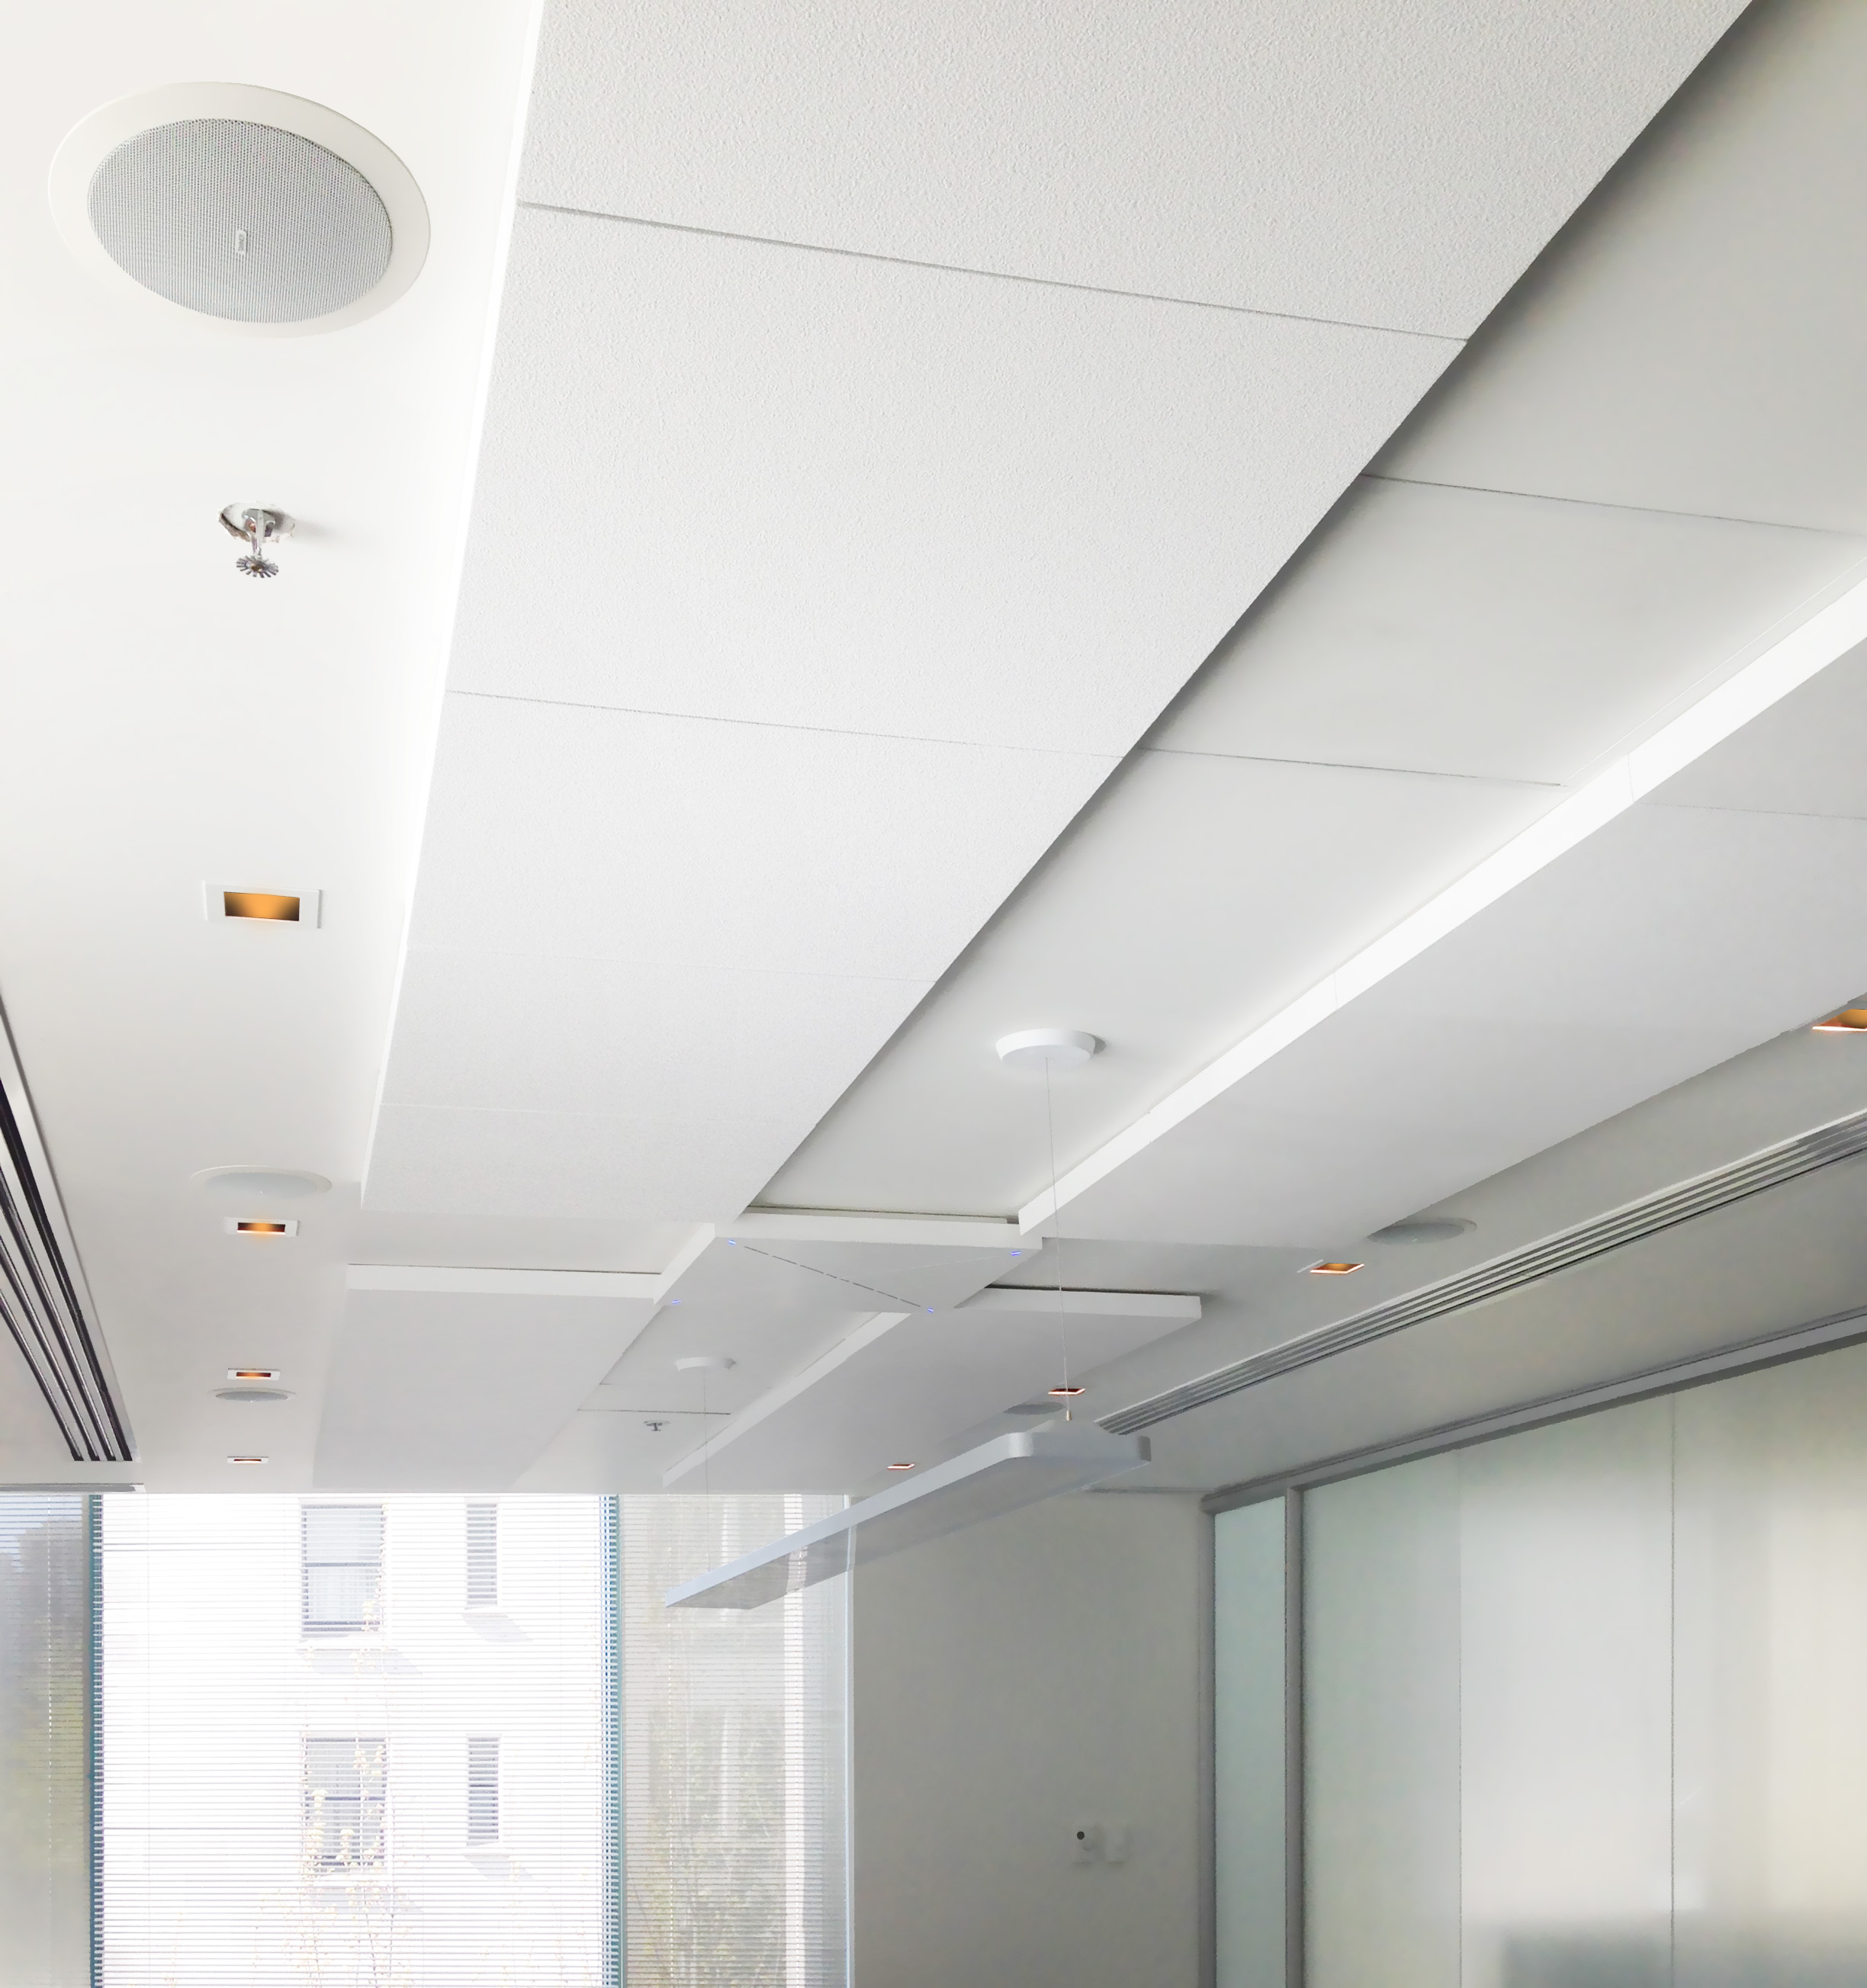 To improve acoustics in this relatively reflective meeting room, we added absorptive acoustic tiling to the ceilings, with a pair of beamforming microphones interleaved within them.